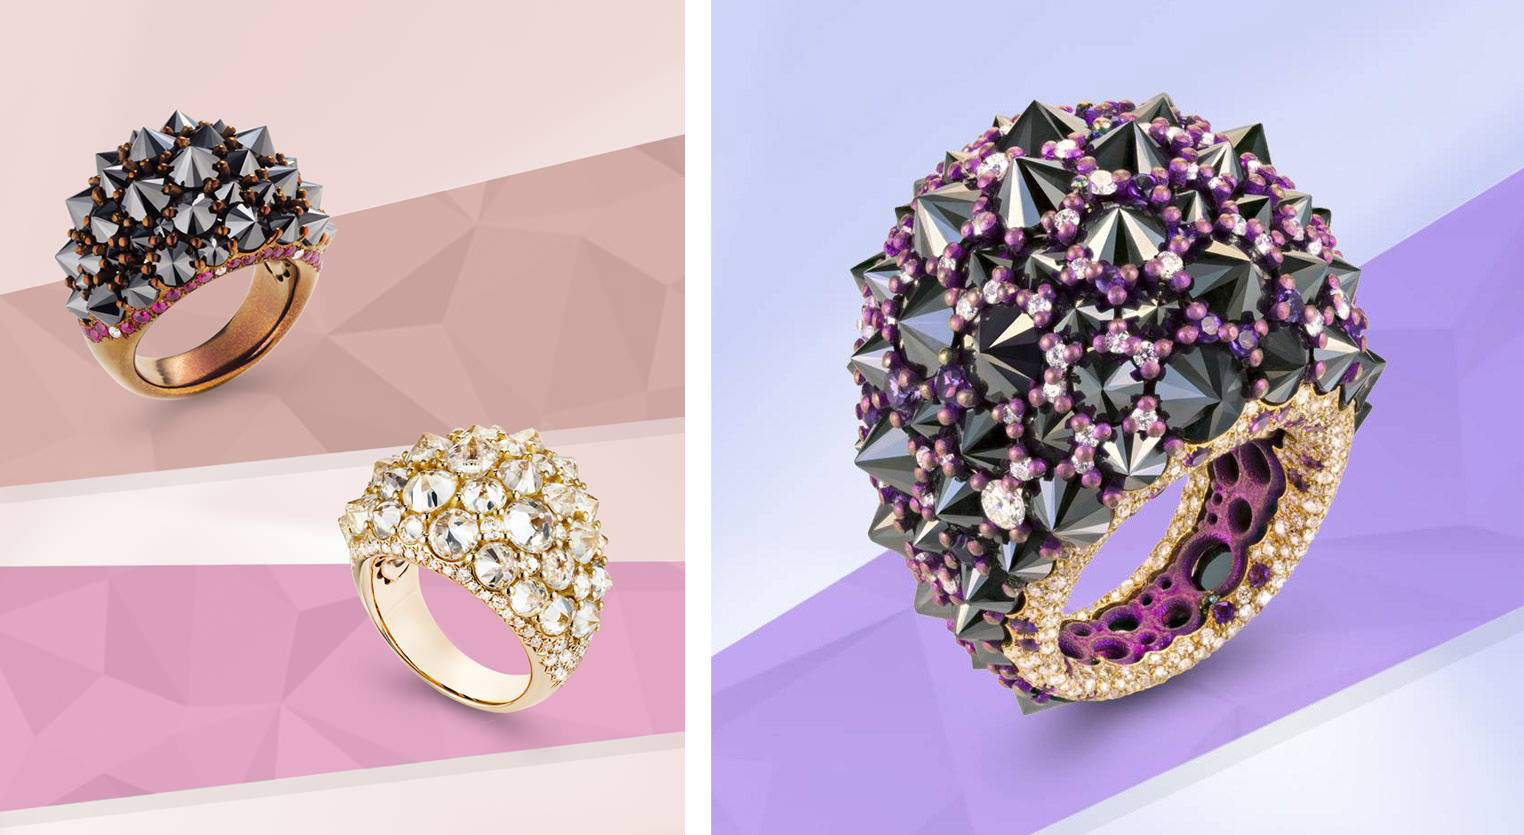 Mattioli 'Rêve_r' rings in titanium, with colourless and black diamonds, rubies, and rose gold with diamonds